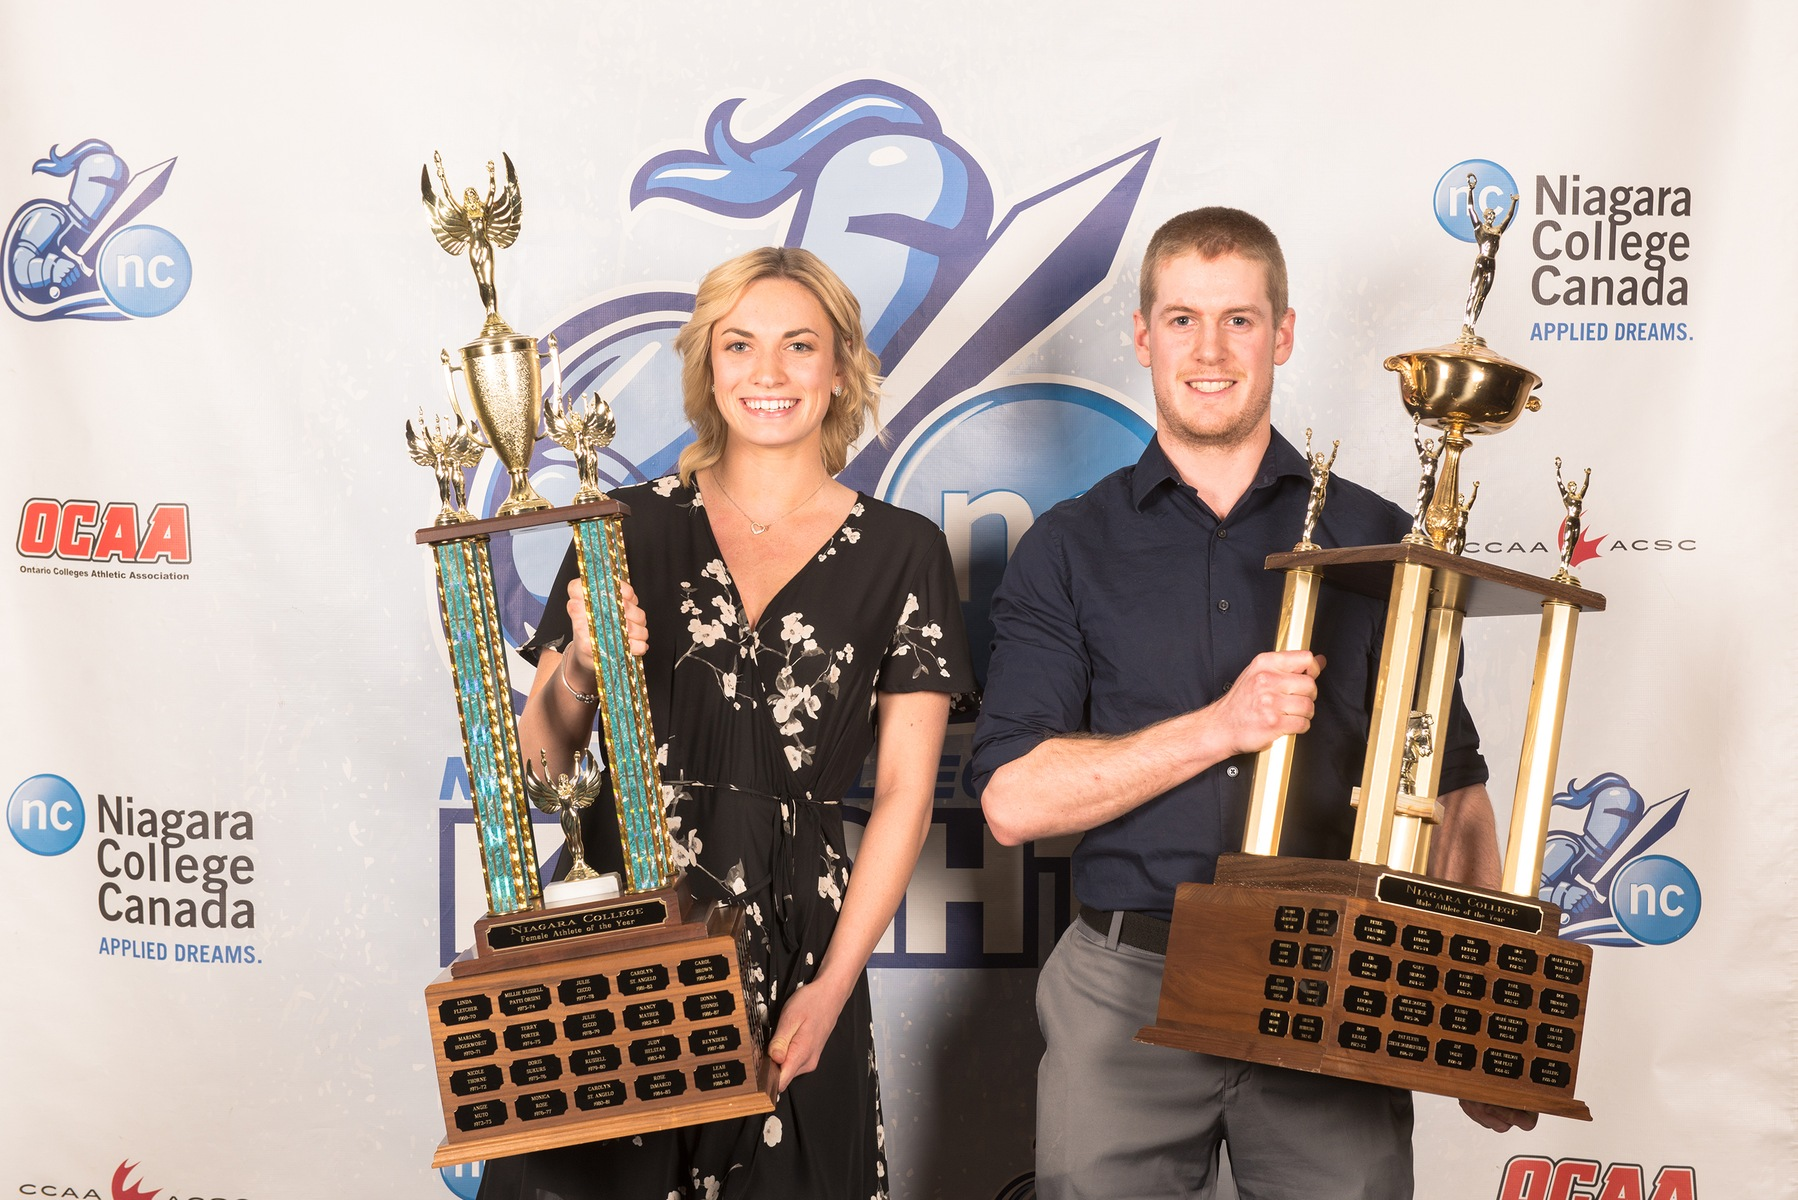 Dixon and Koslowski named Niagara Knights Athletes of the Year